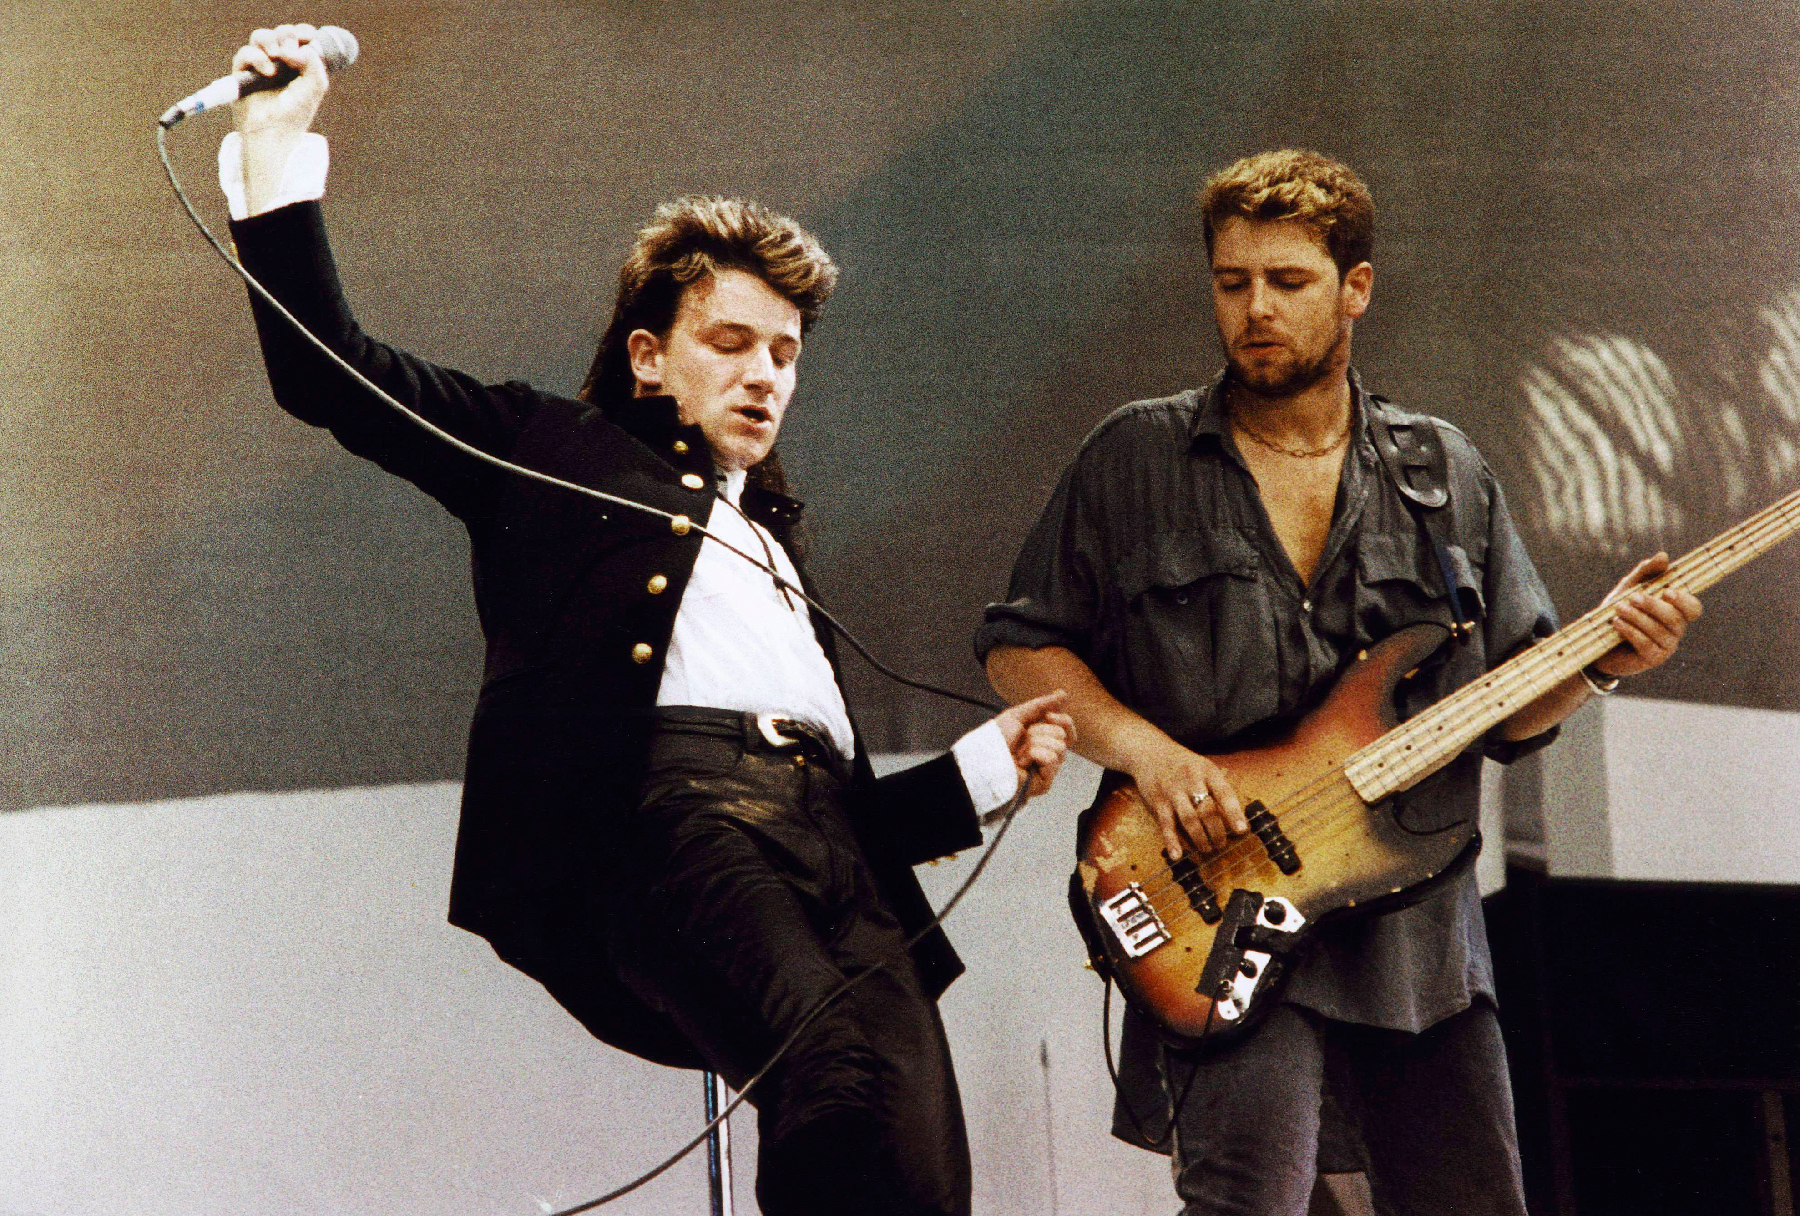 U2's 'Bad' Break: 12 Minutes at Live Aid That Made the Band's Career